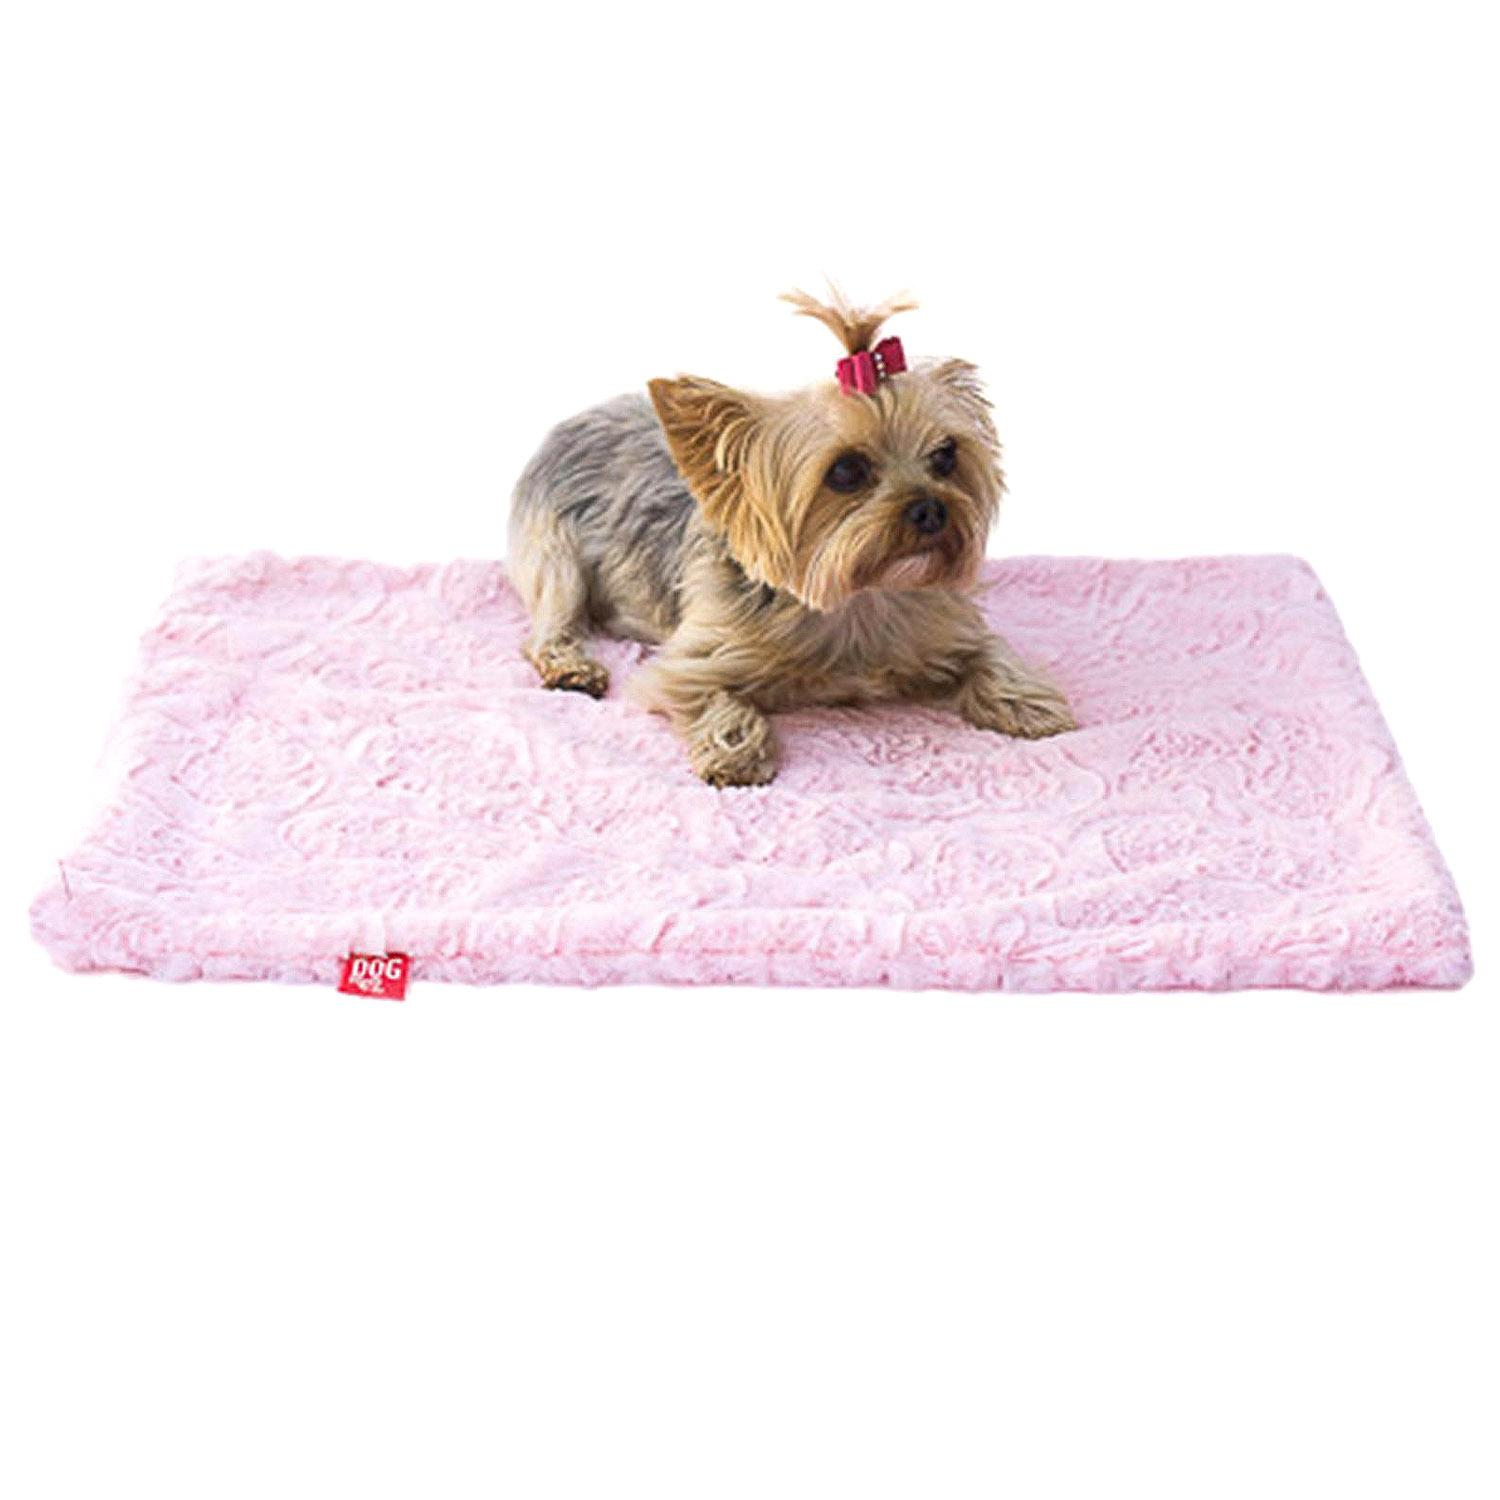 Paisley Dog Blanket by The Dog Squad - Pink